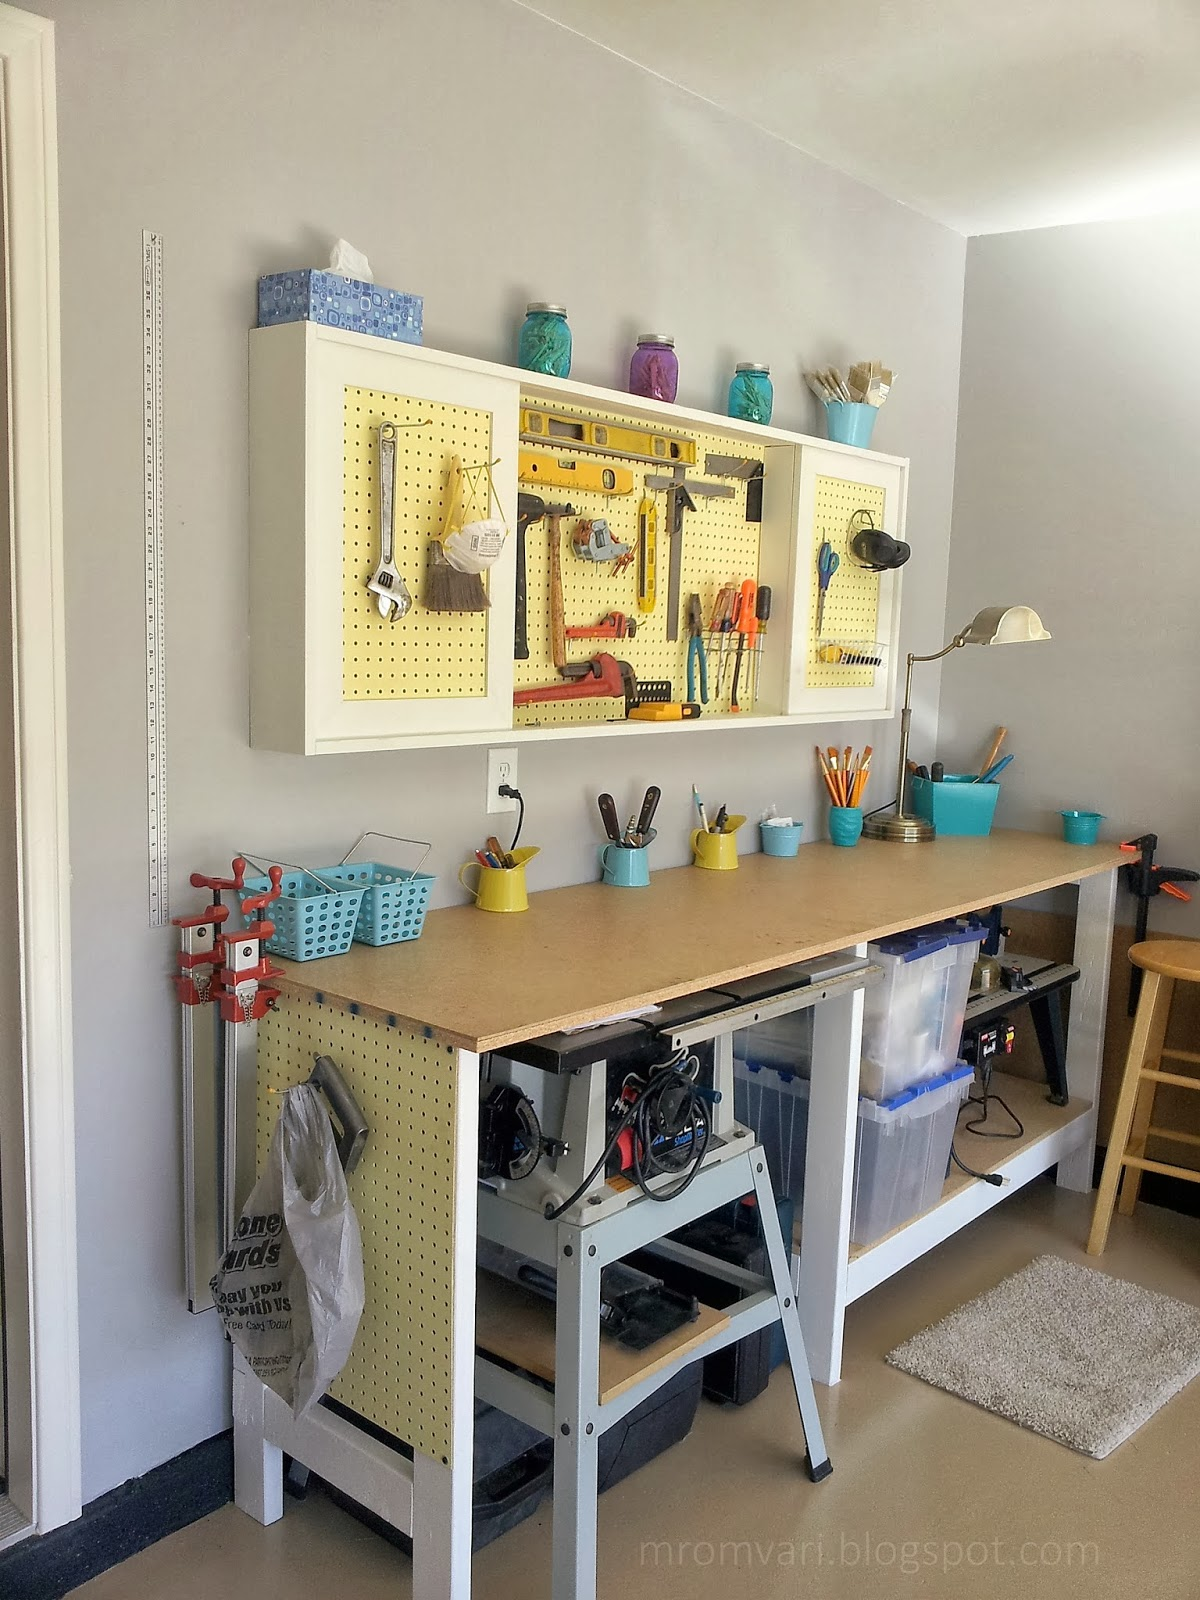 Build A DIY Workbench And Wall Mount Pegboard Tool Cabinet With Sliding Doors Featured